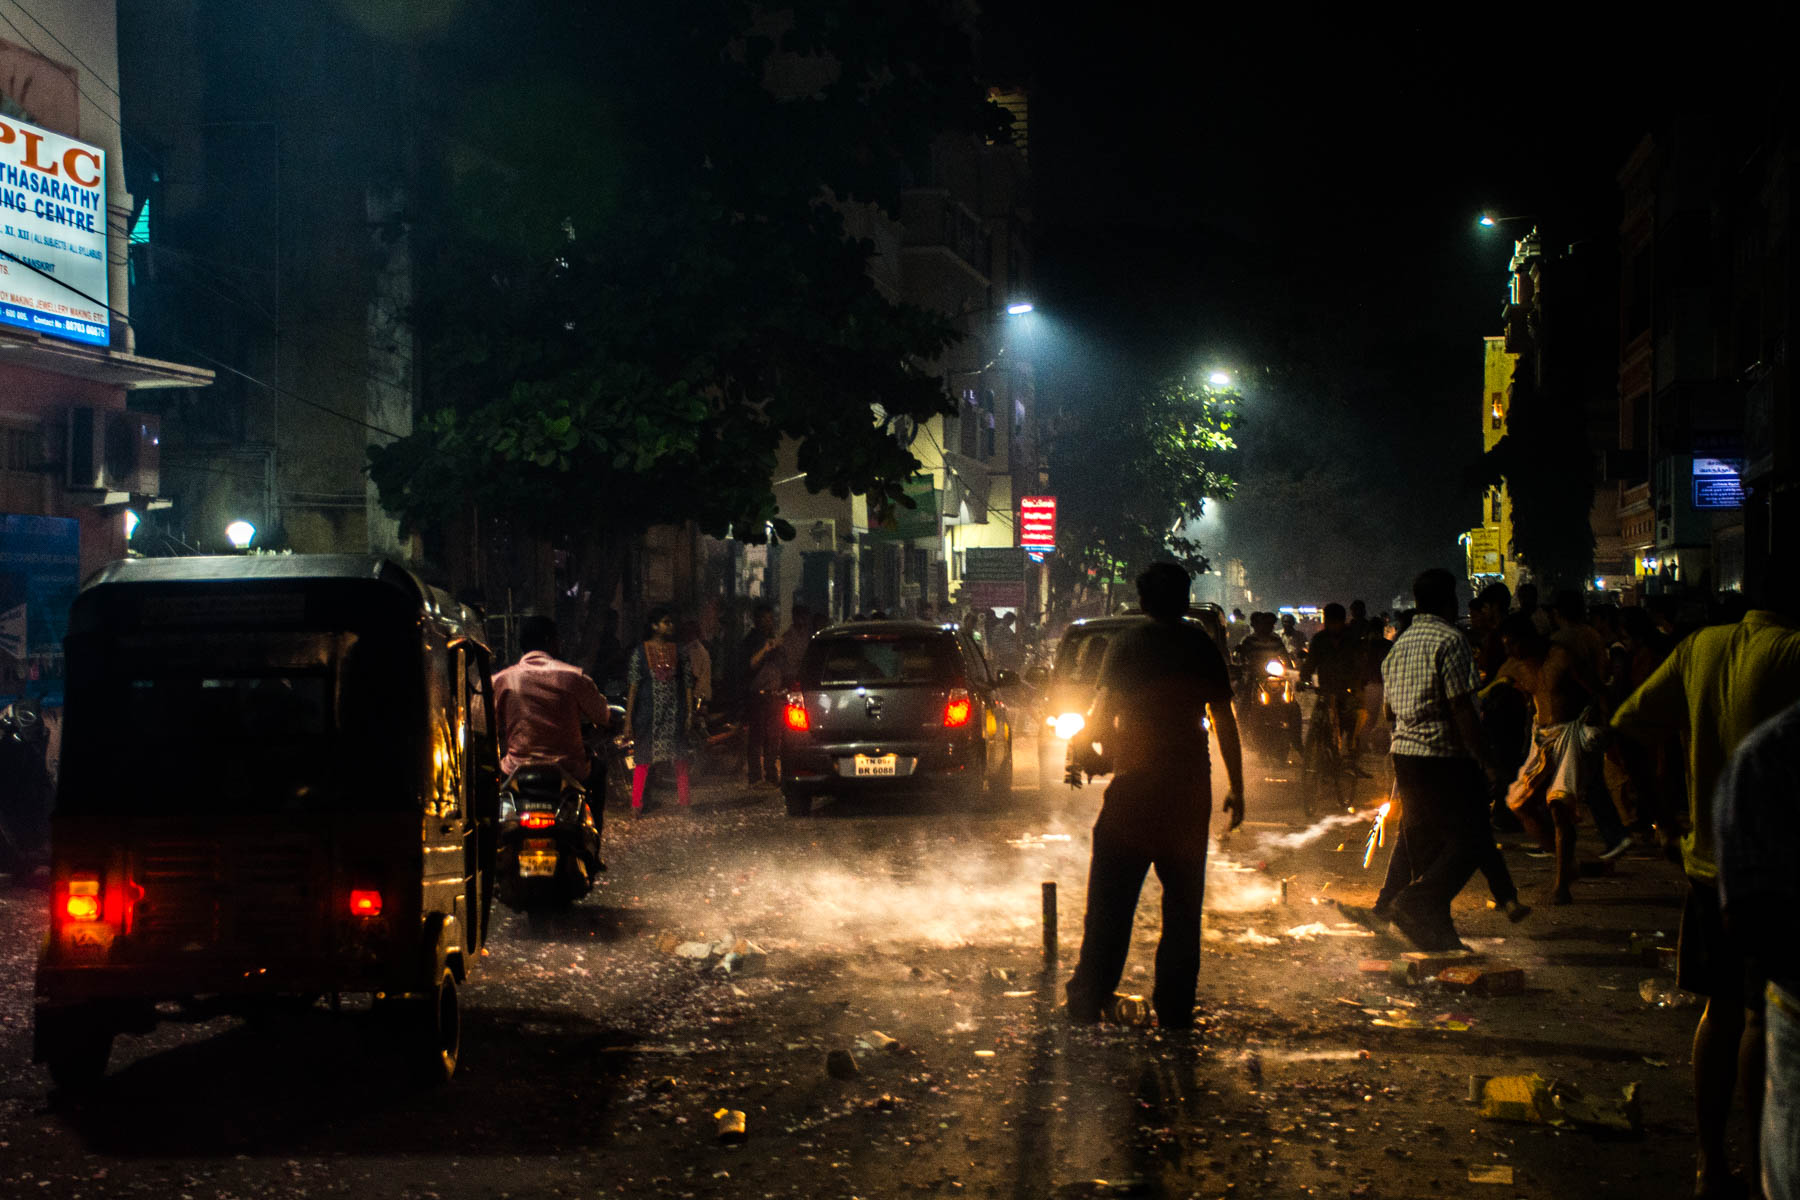 Night chaos on the road while celebrating Diwali in Chennai, India - Lost With Purpose